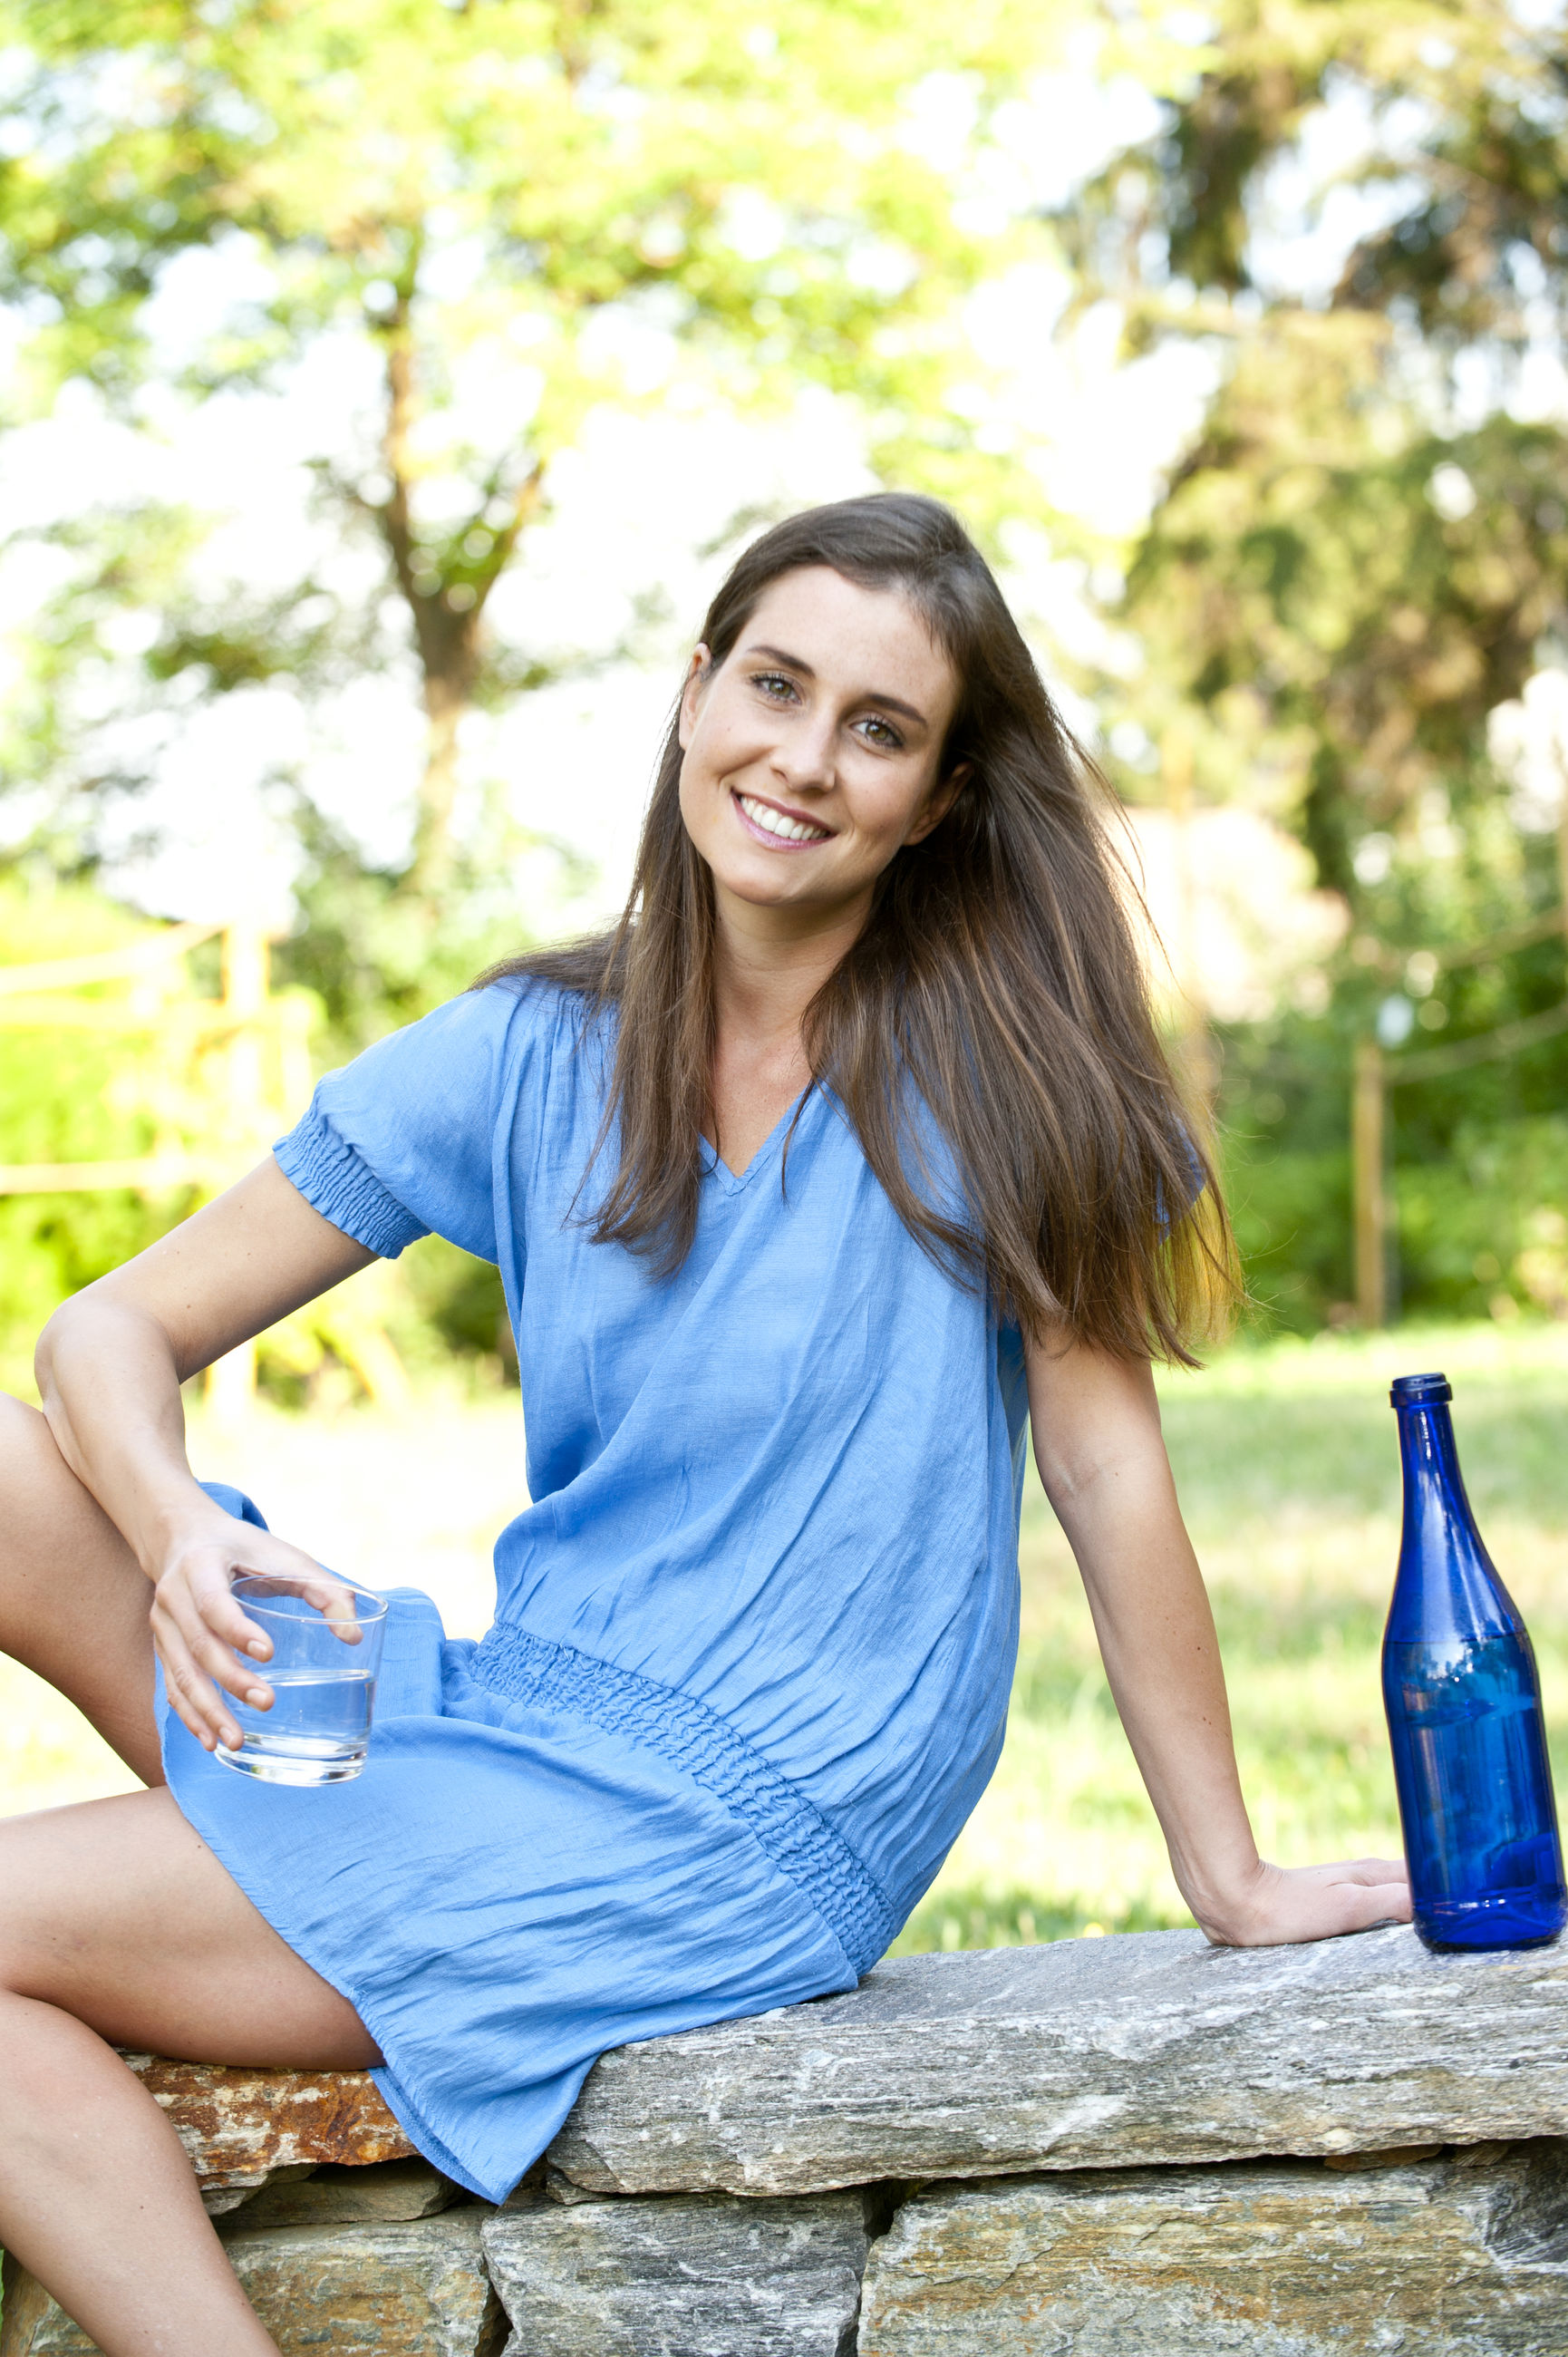 Portrait of smiling young woman holding glass on retaining wall at park